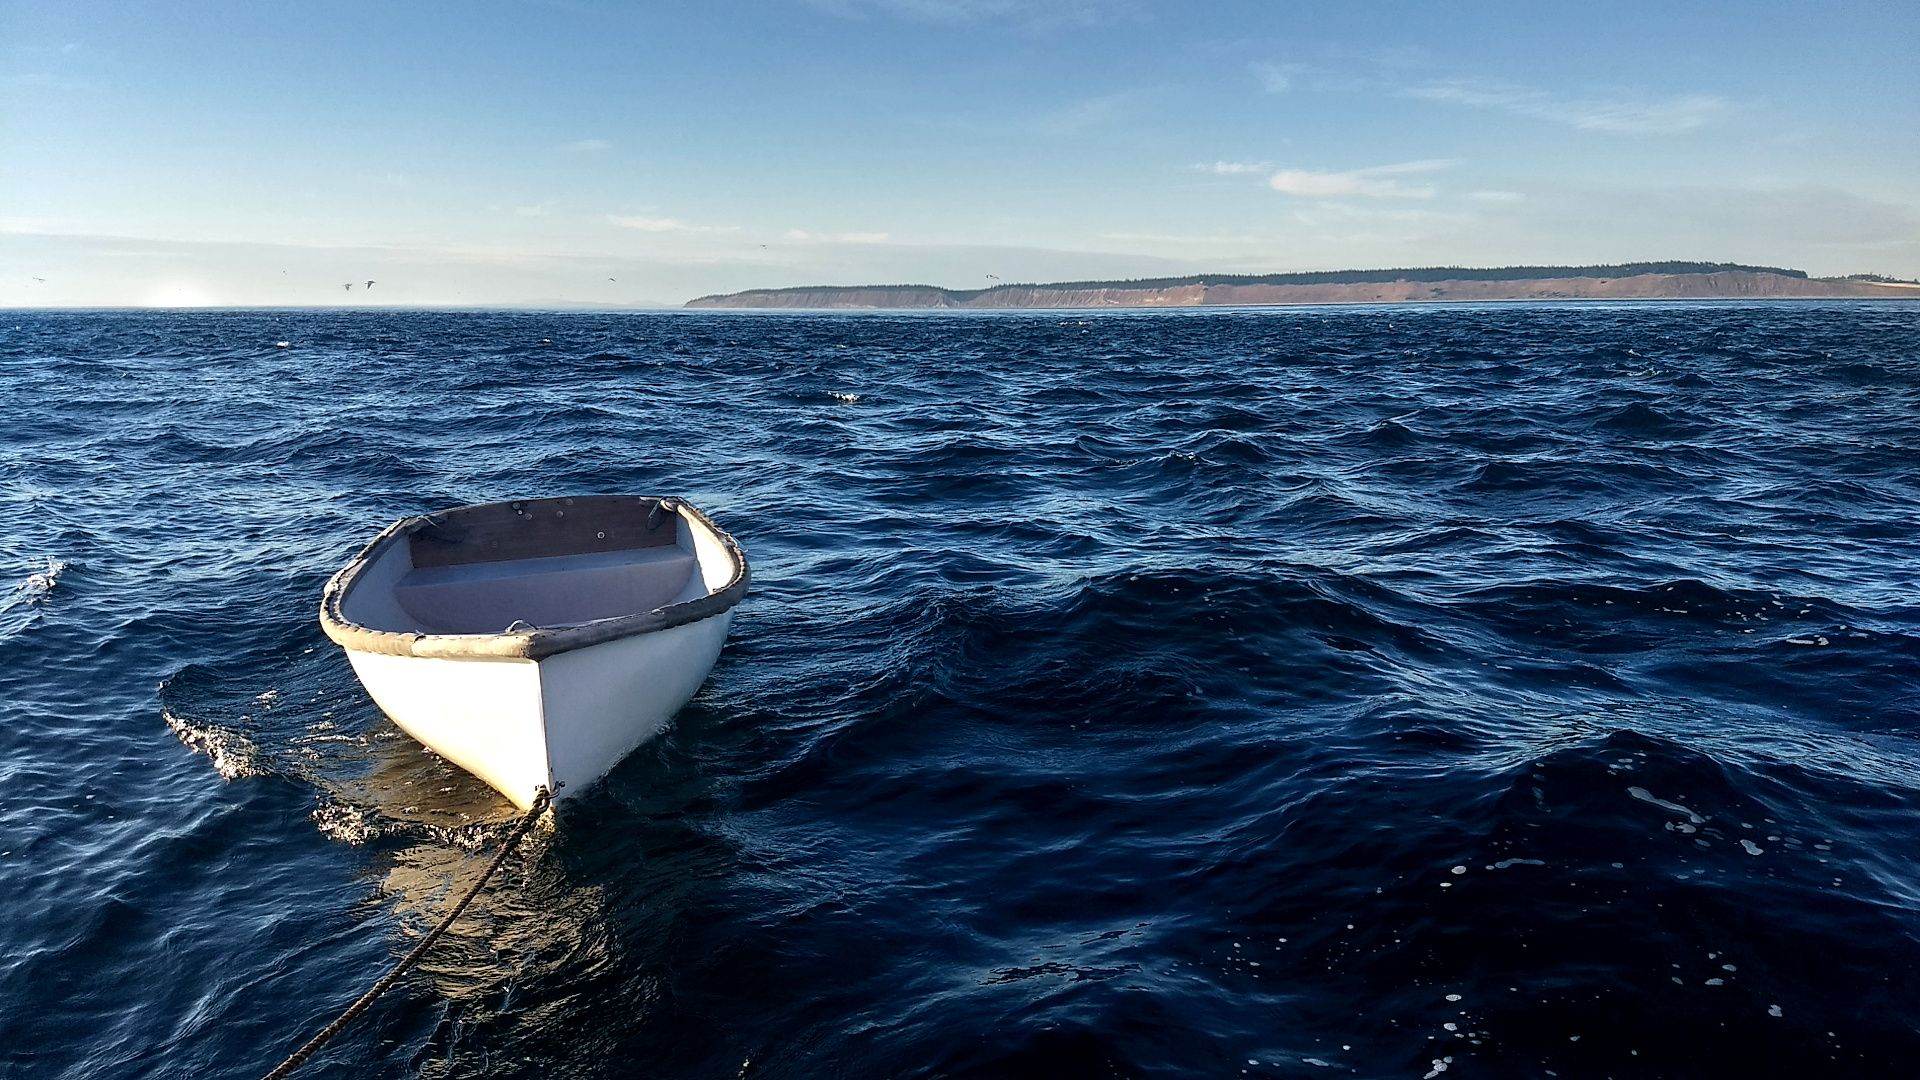 A small dinghy bouncing through some rough water.